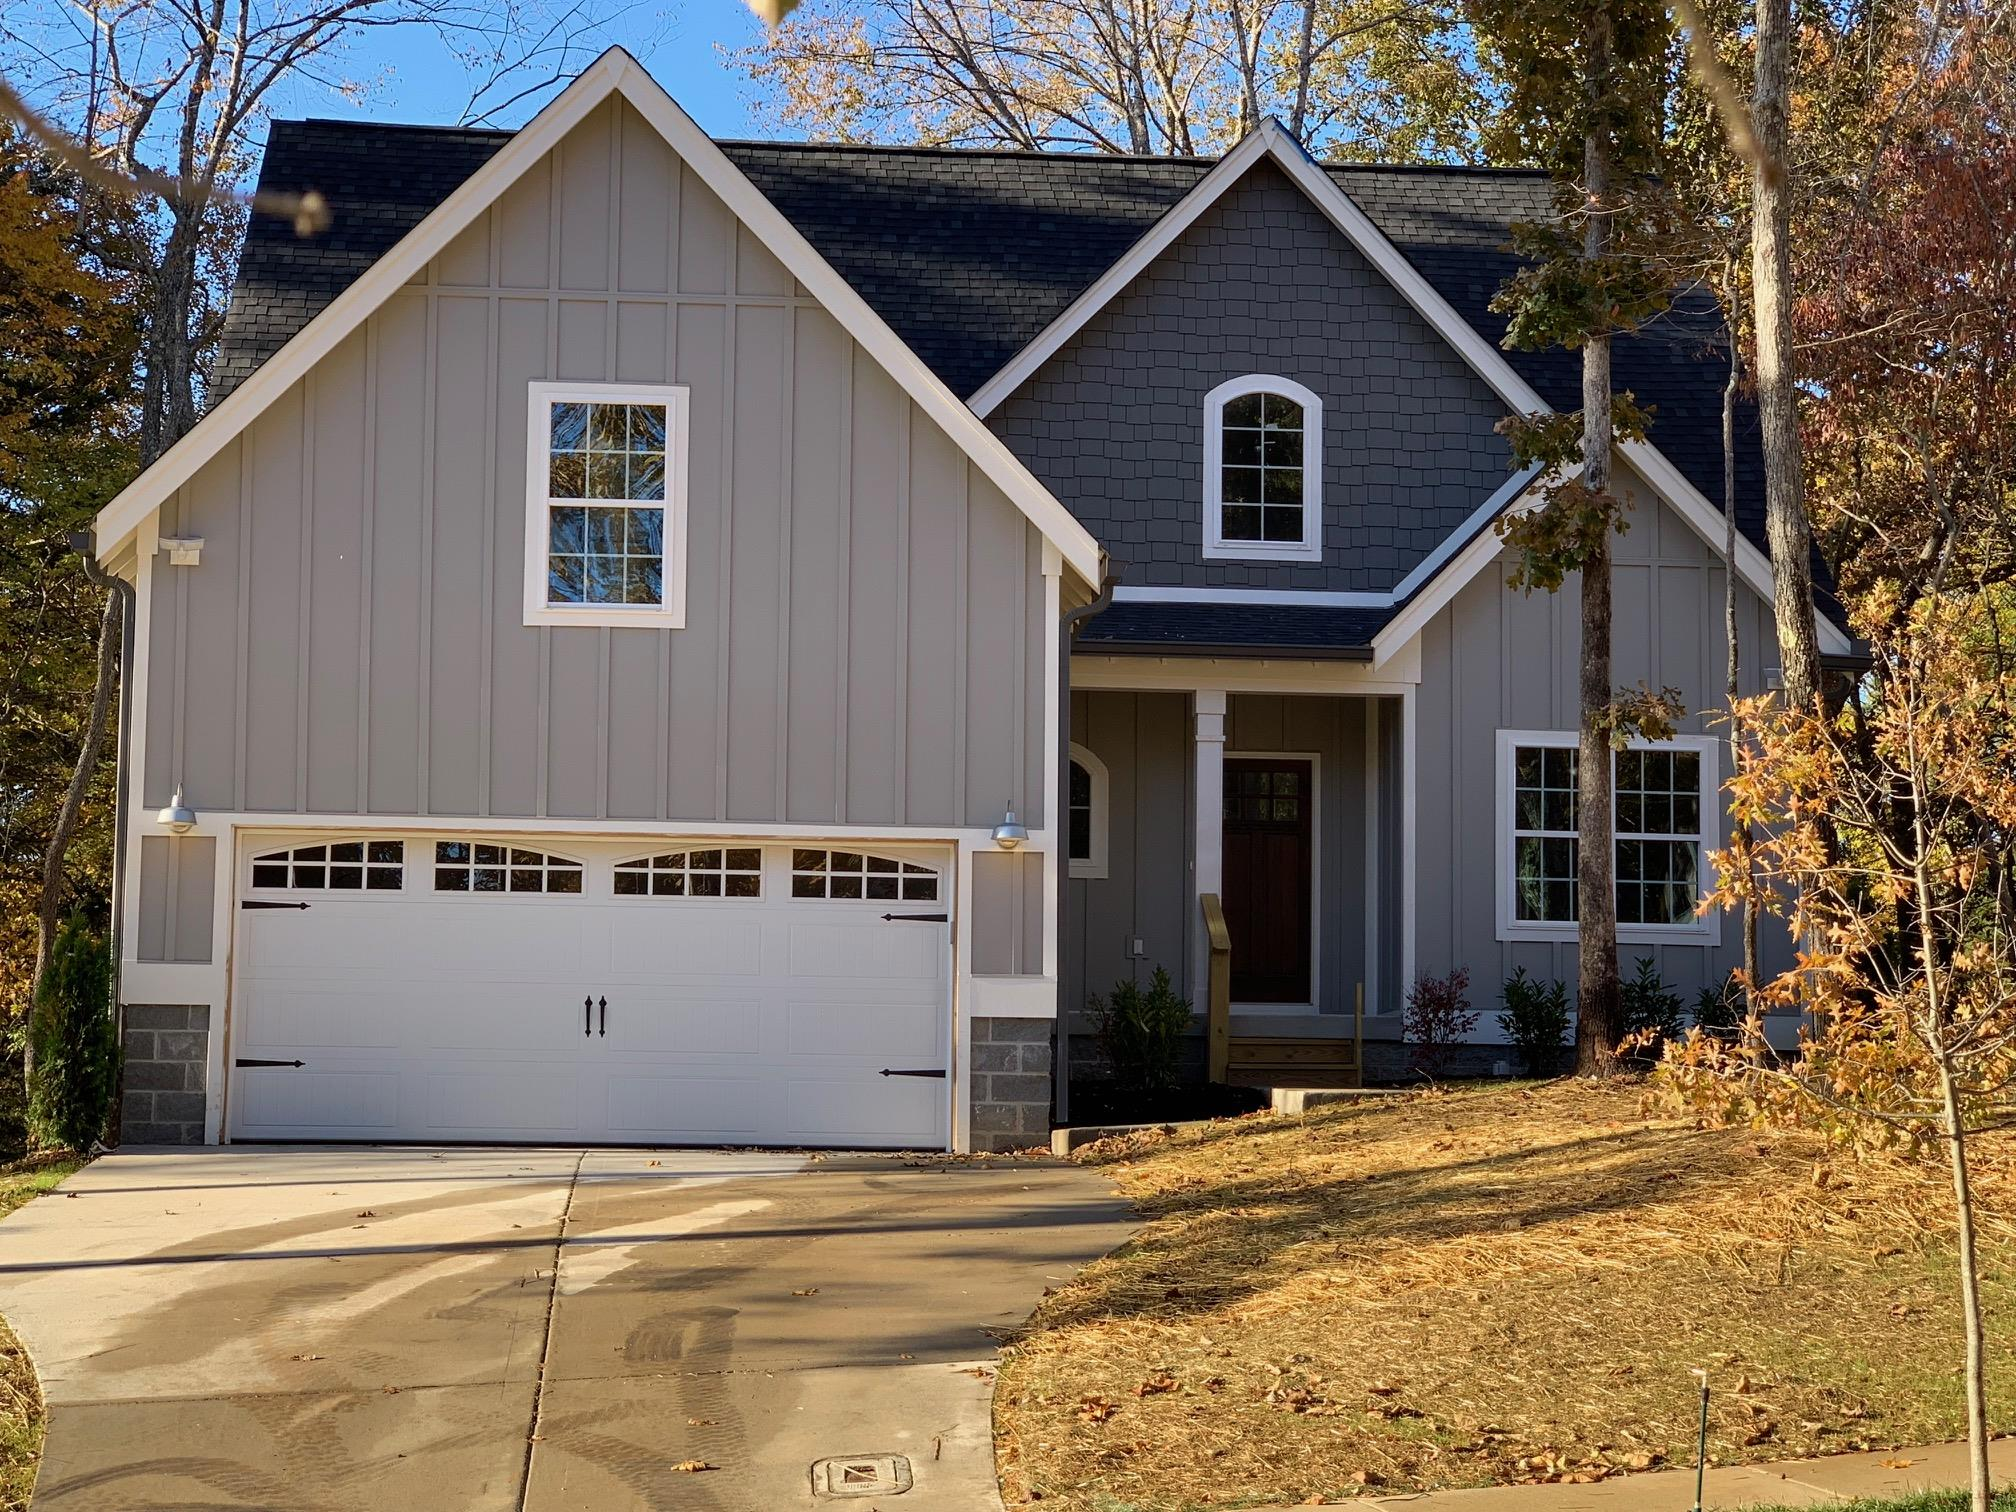 Homes For Sale in Pepper Tree Cove Fairview TN